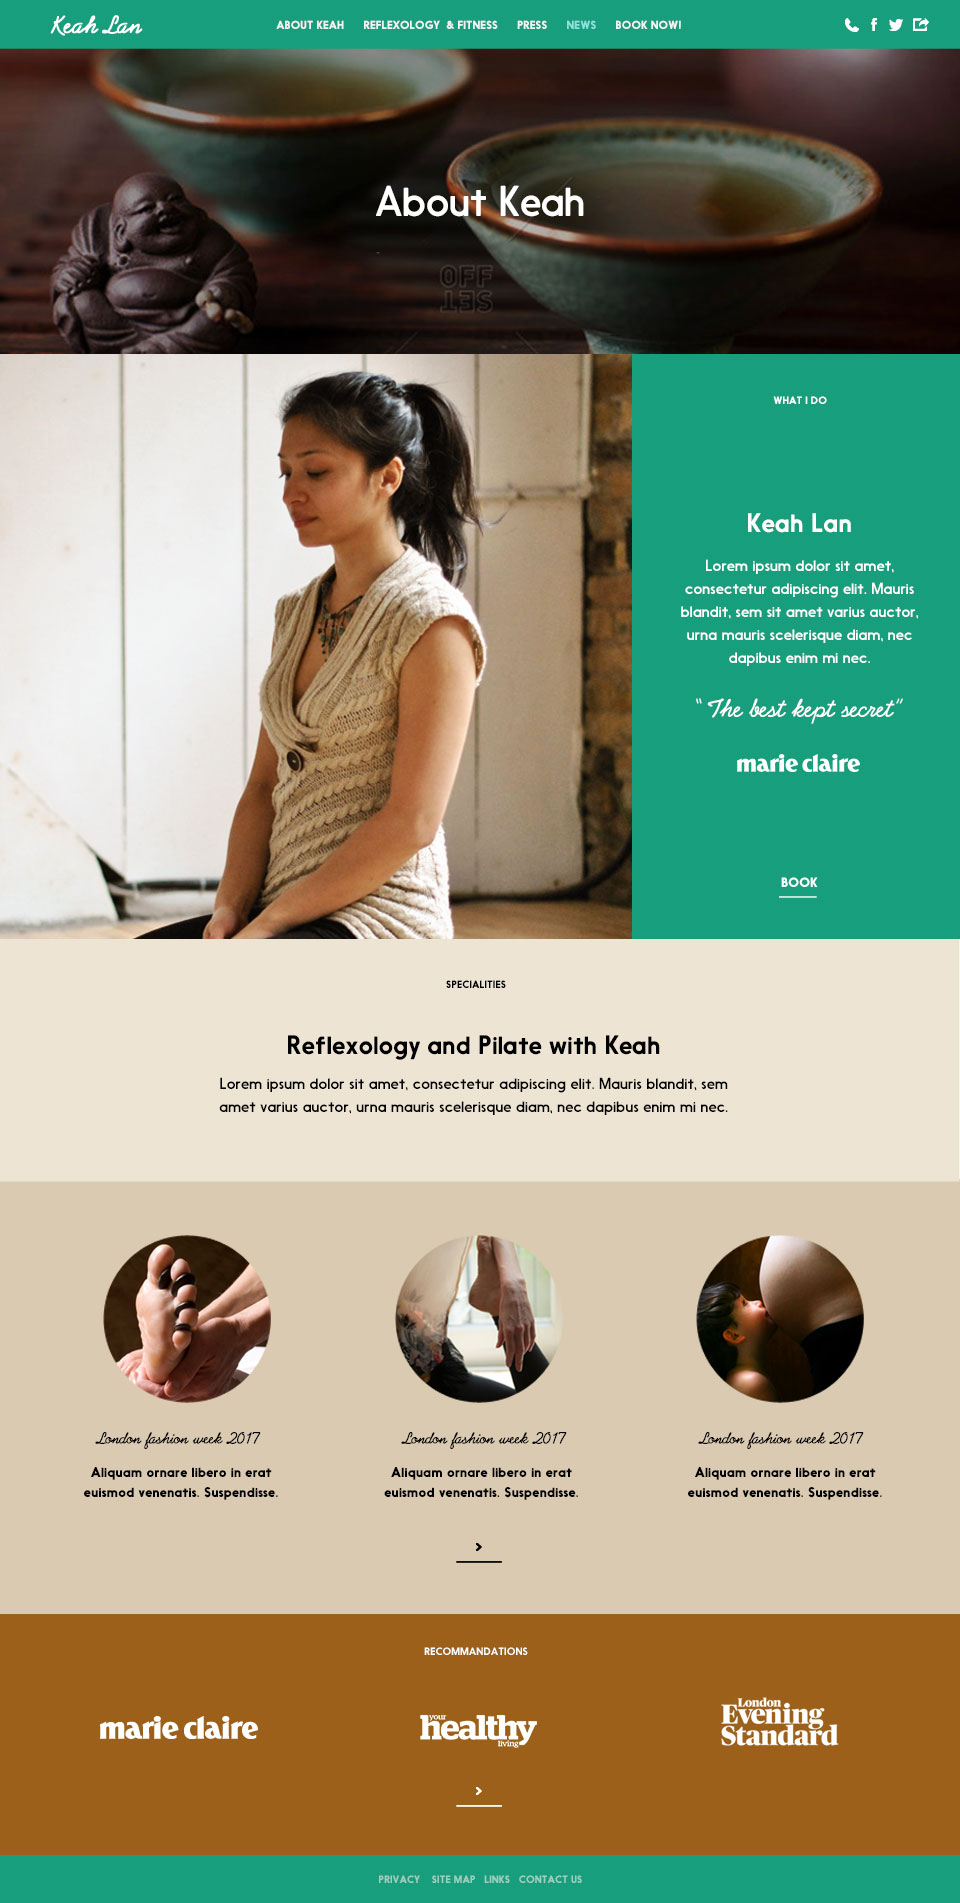 krisky krush, Keah Lan, website